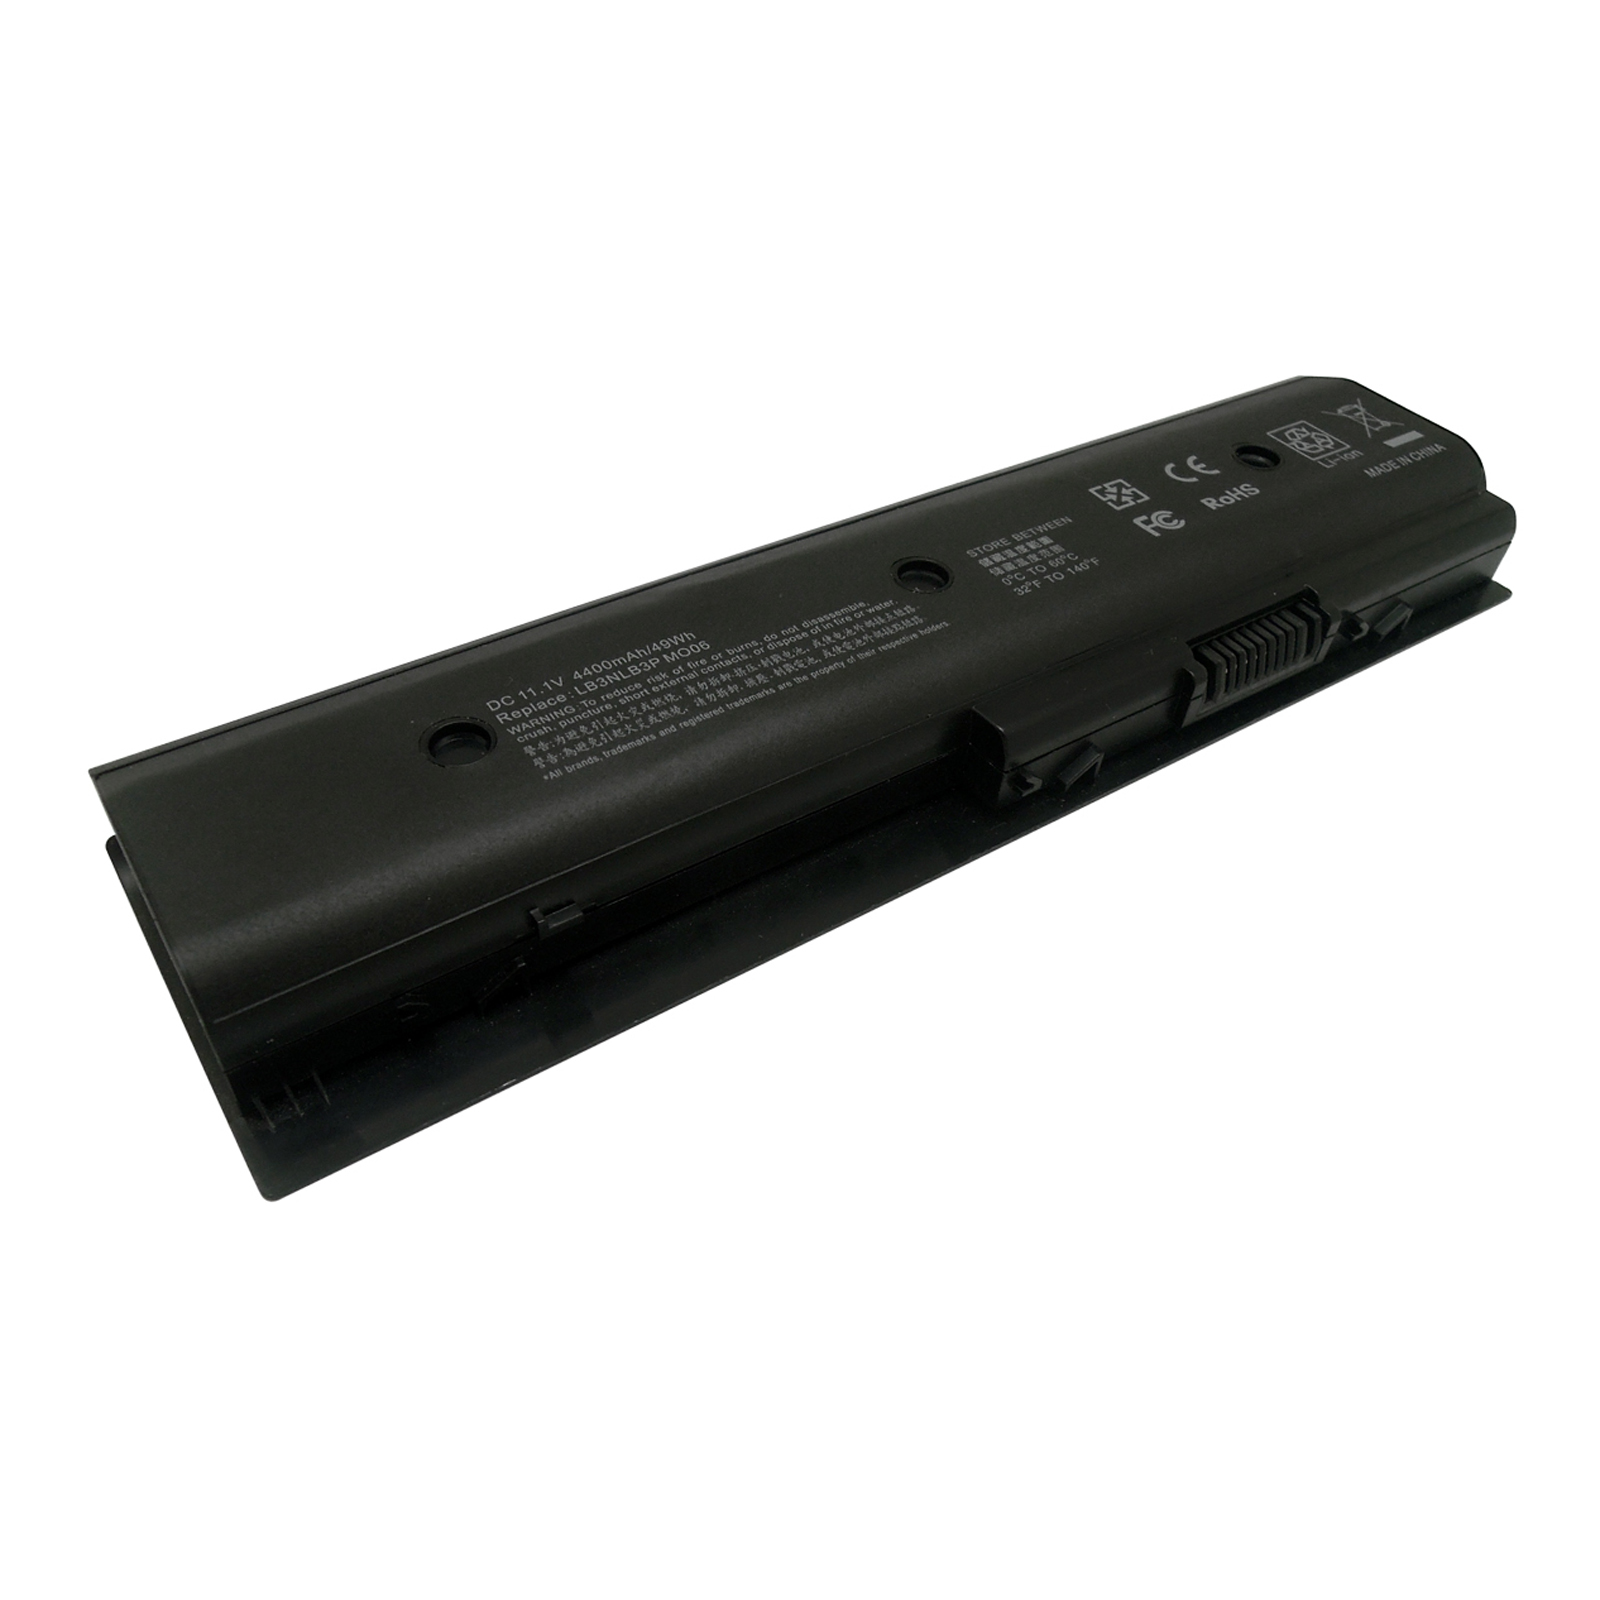 Superb Choice  6-cell HP MO06 HP Envy dv4 dv6 m6, Pavilion dv4 dv6 dv7 Series Laptop Battery